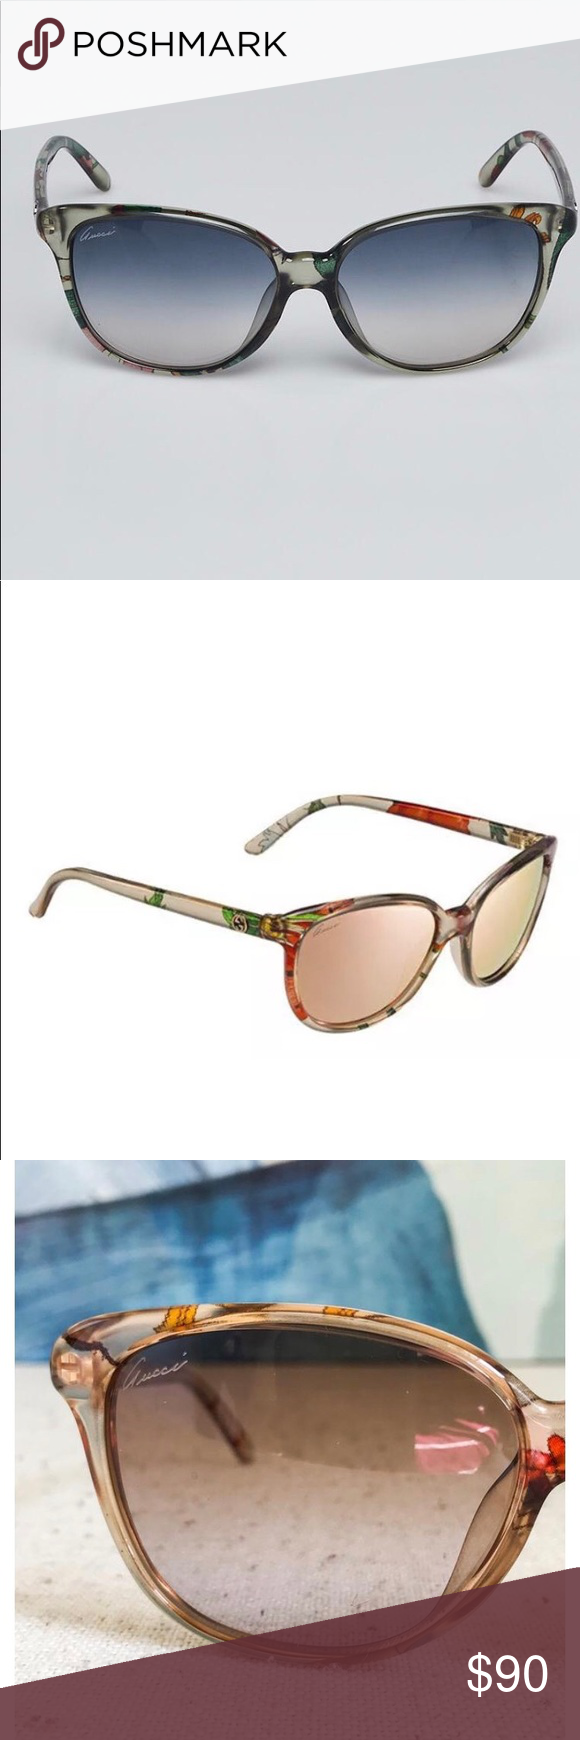 03deeaa378 Gucci Flora Frame Sunglasses NWOB  395 Retail 100% Authentic! Guarantee!  Gucci Flora s unmistakable